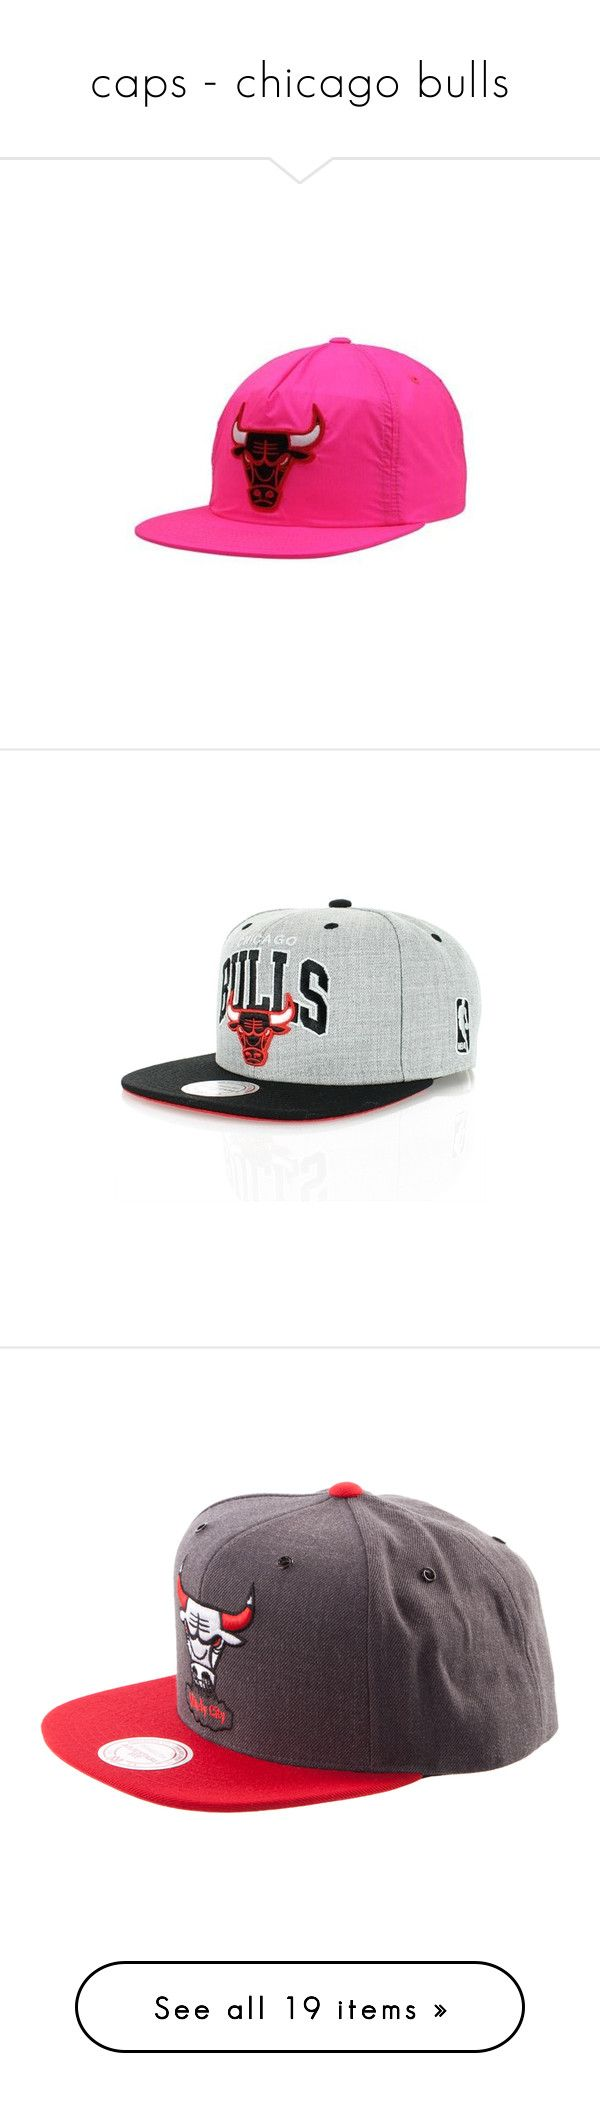 """""""caps - chicago bulls"""" by nadi-sofia ❤ liked on Polyvore featuring accessories, hats, snapback hats, snap back hats, flat hat, neon hats, chicago bulls hat, chicago bulls snapback hats, mitchell ness hats and caps"""